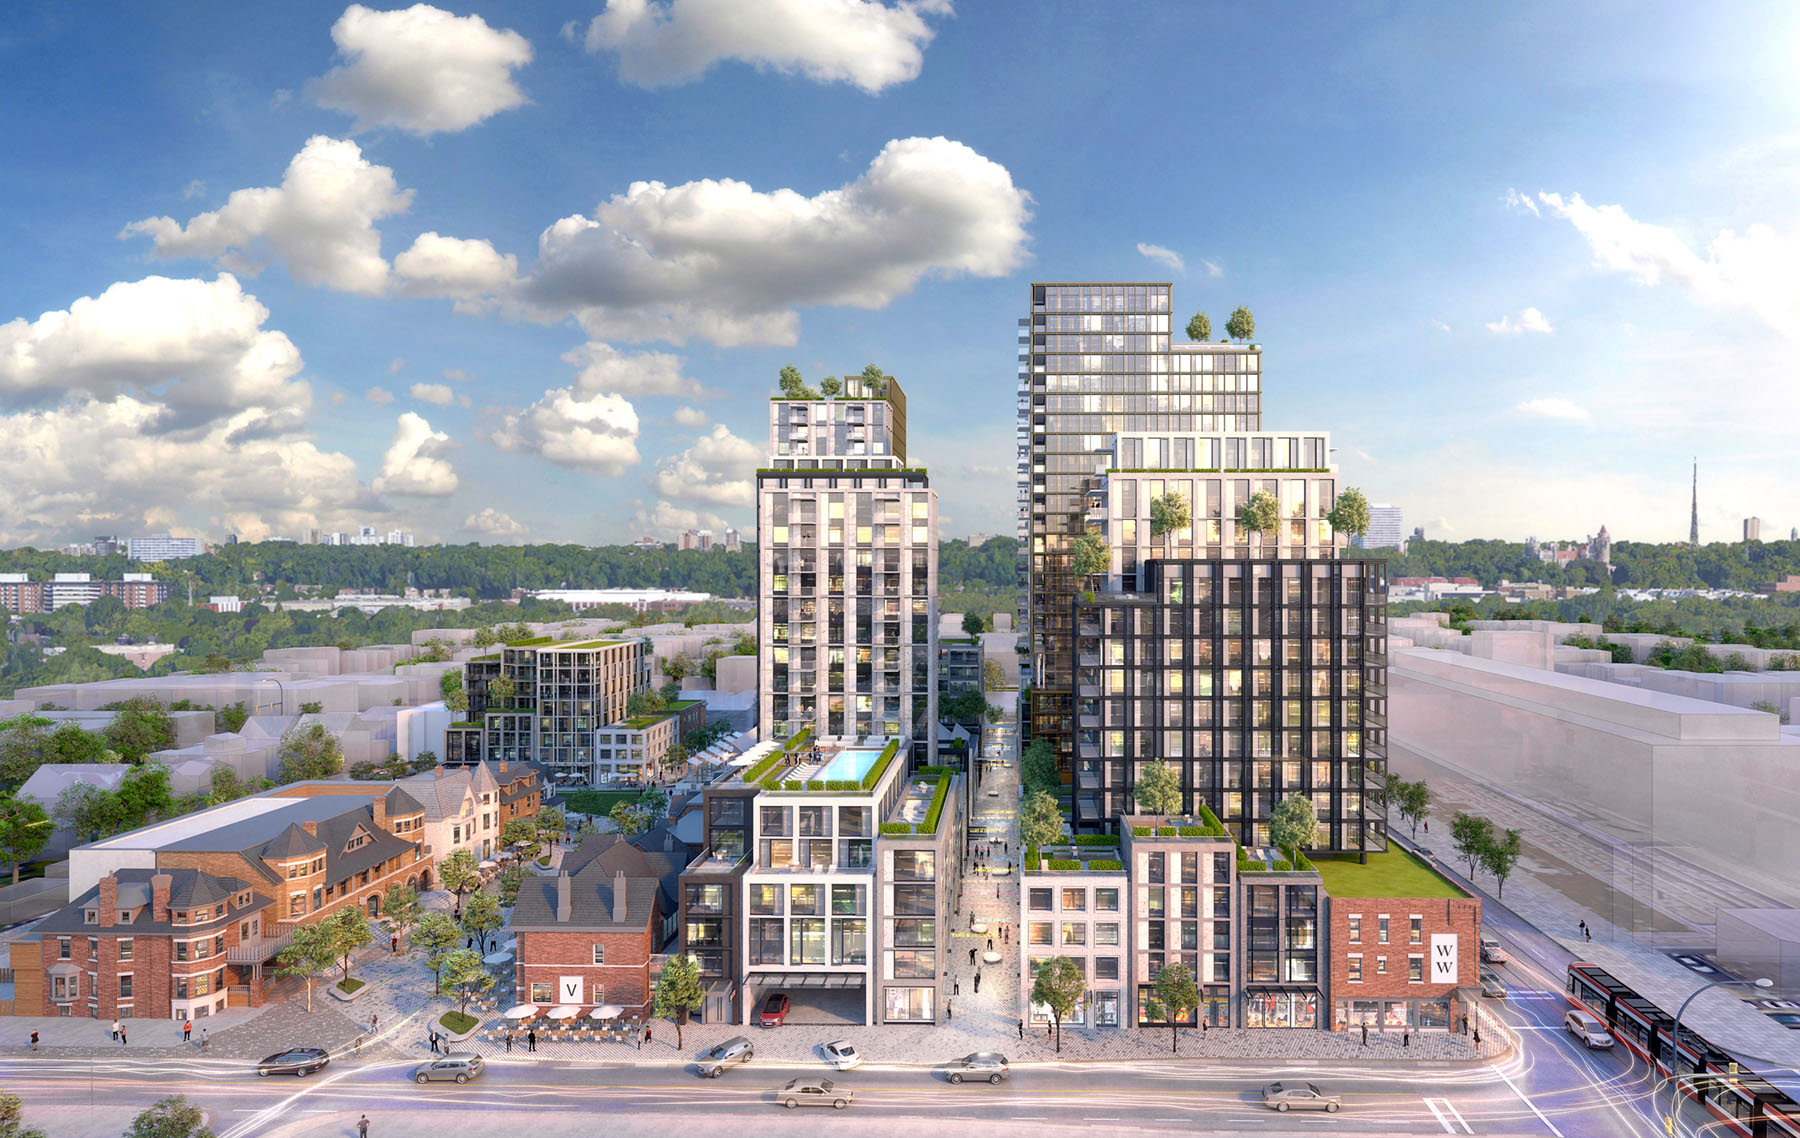 Rendering of the community-oriented reconstruction of Mirvish Village, a local landmark in Toronto.